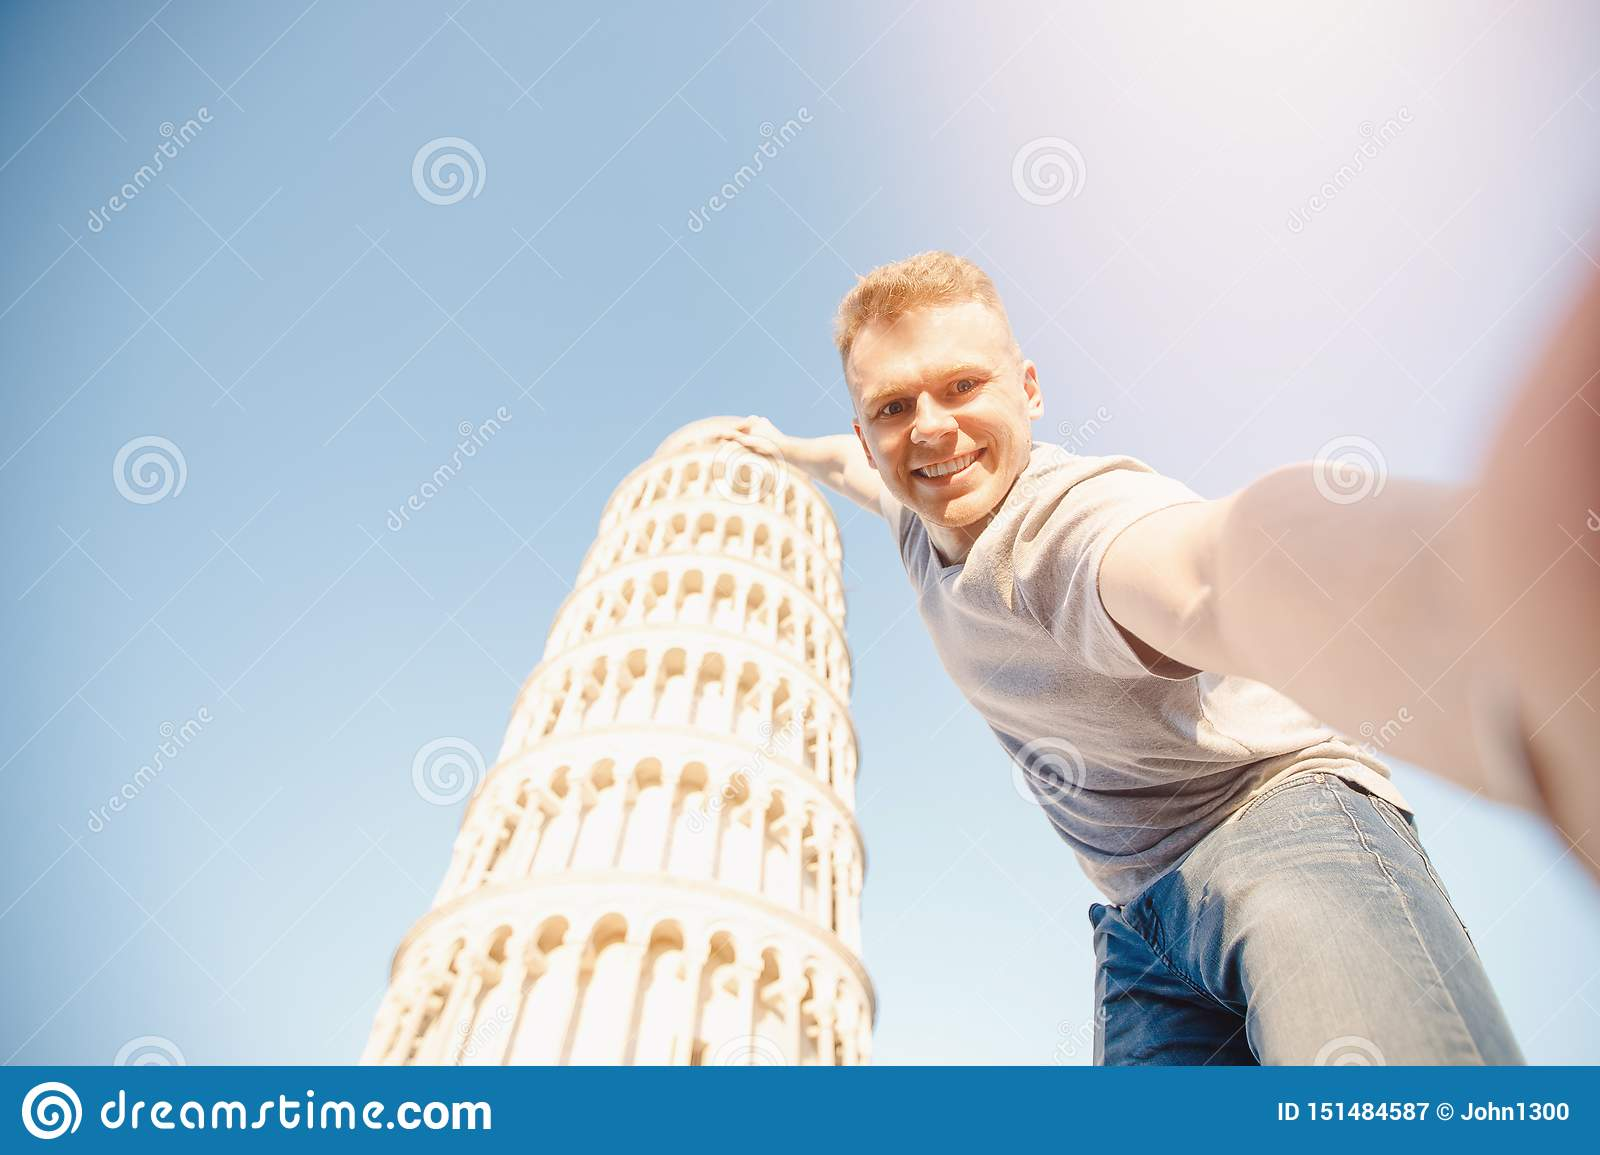 Travel tourists Man making selfie in front of leaning tower Pisa, Italy